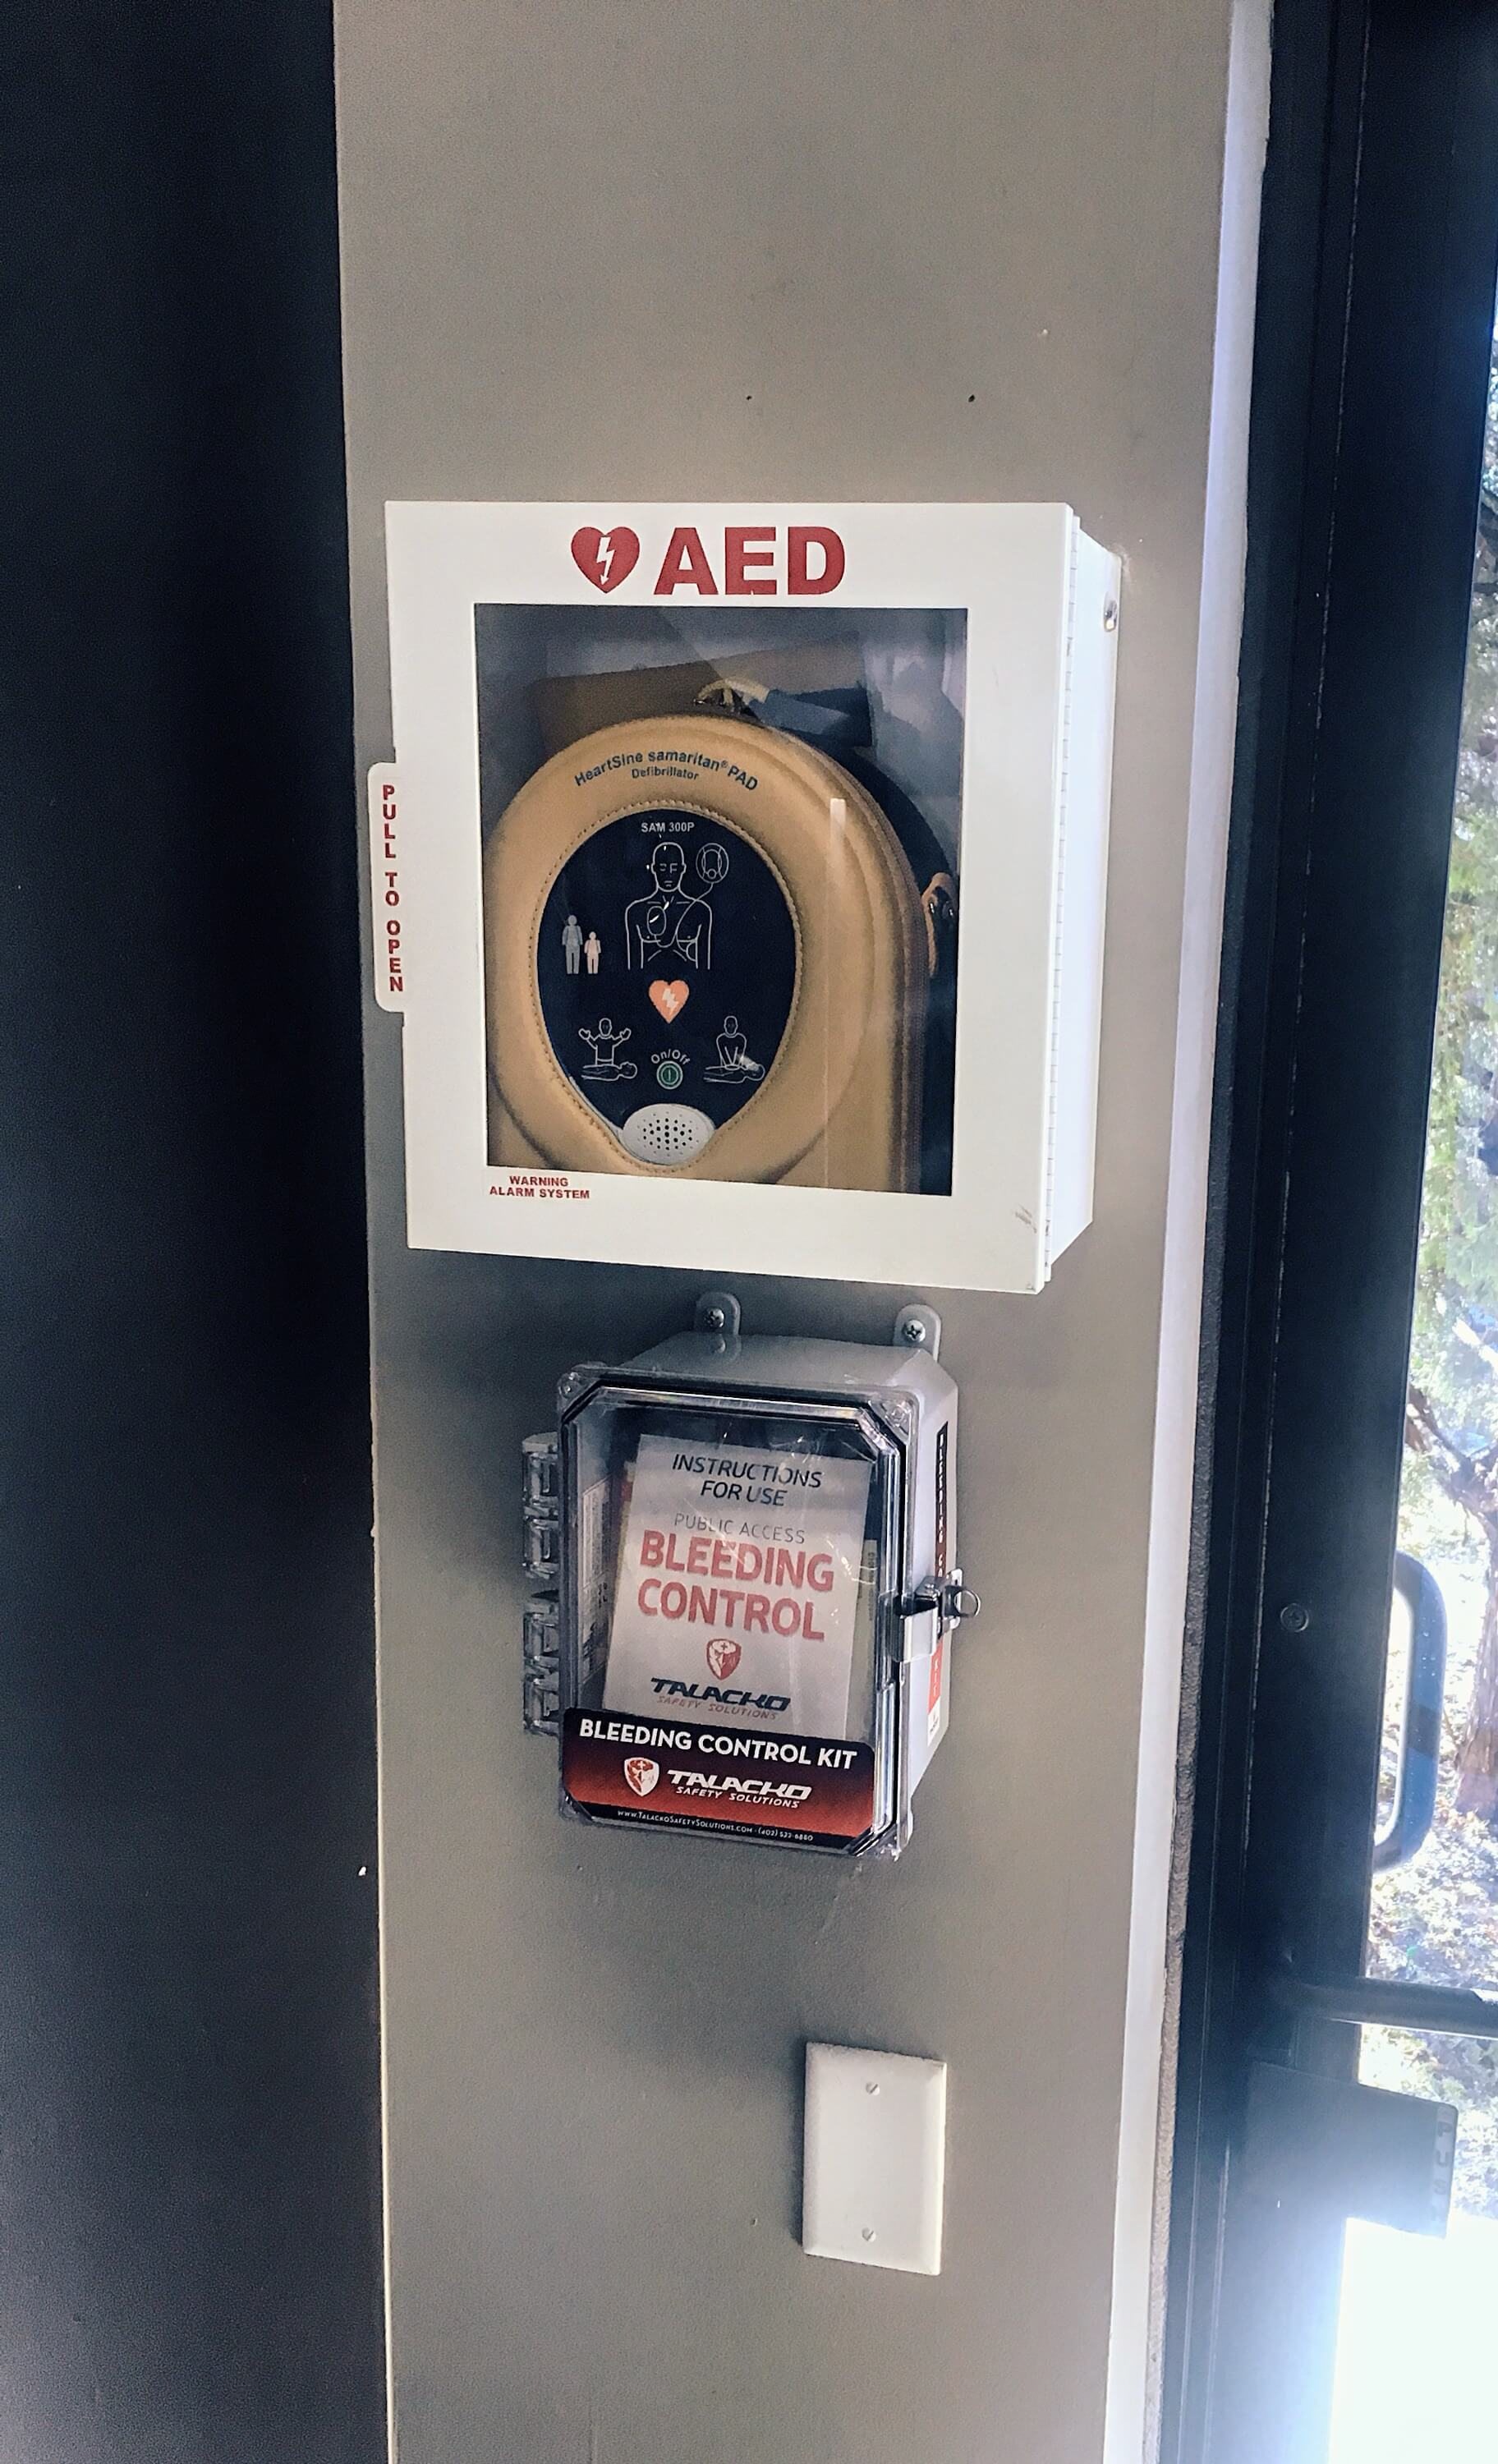 Public access bleeding control stations can be the difference between life and death in the presence of a major bleed.